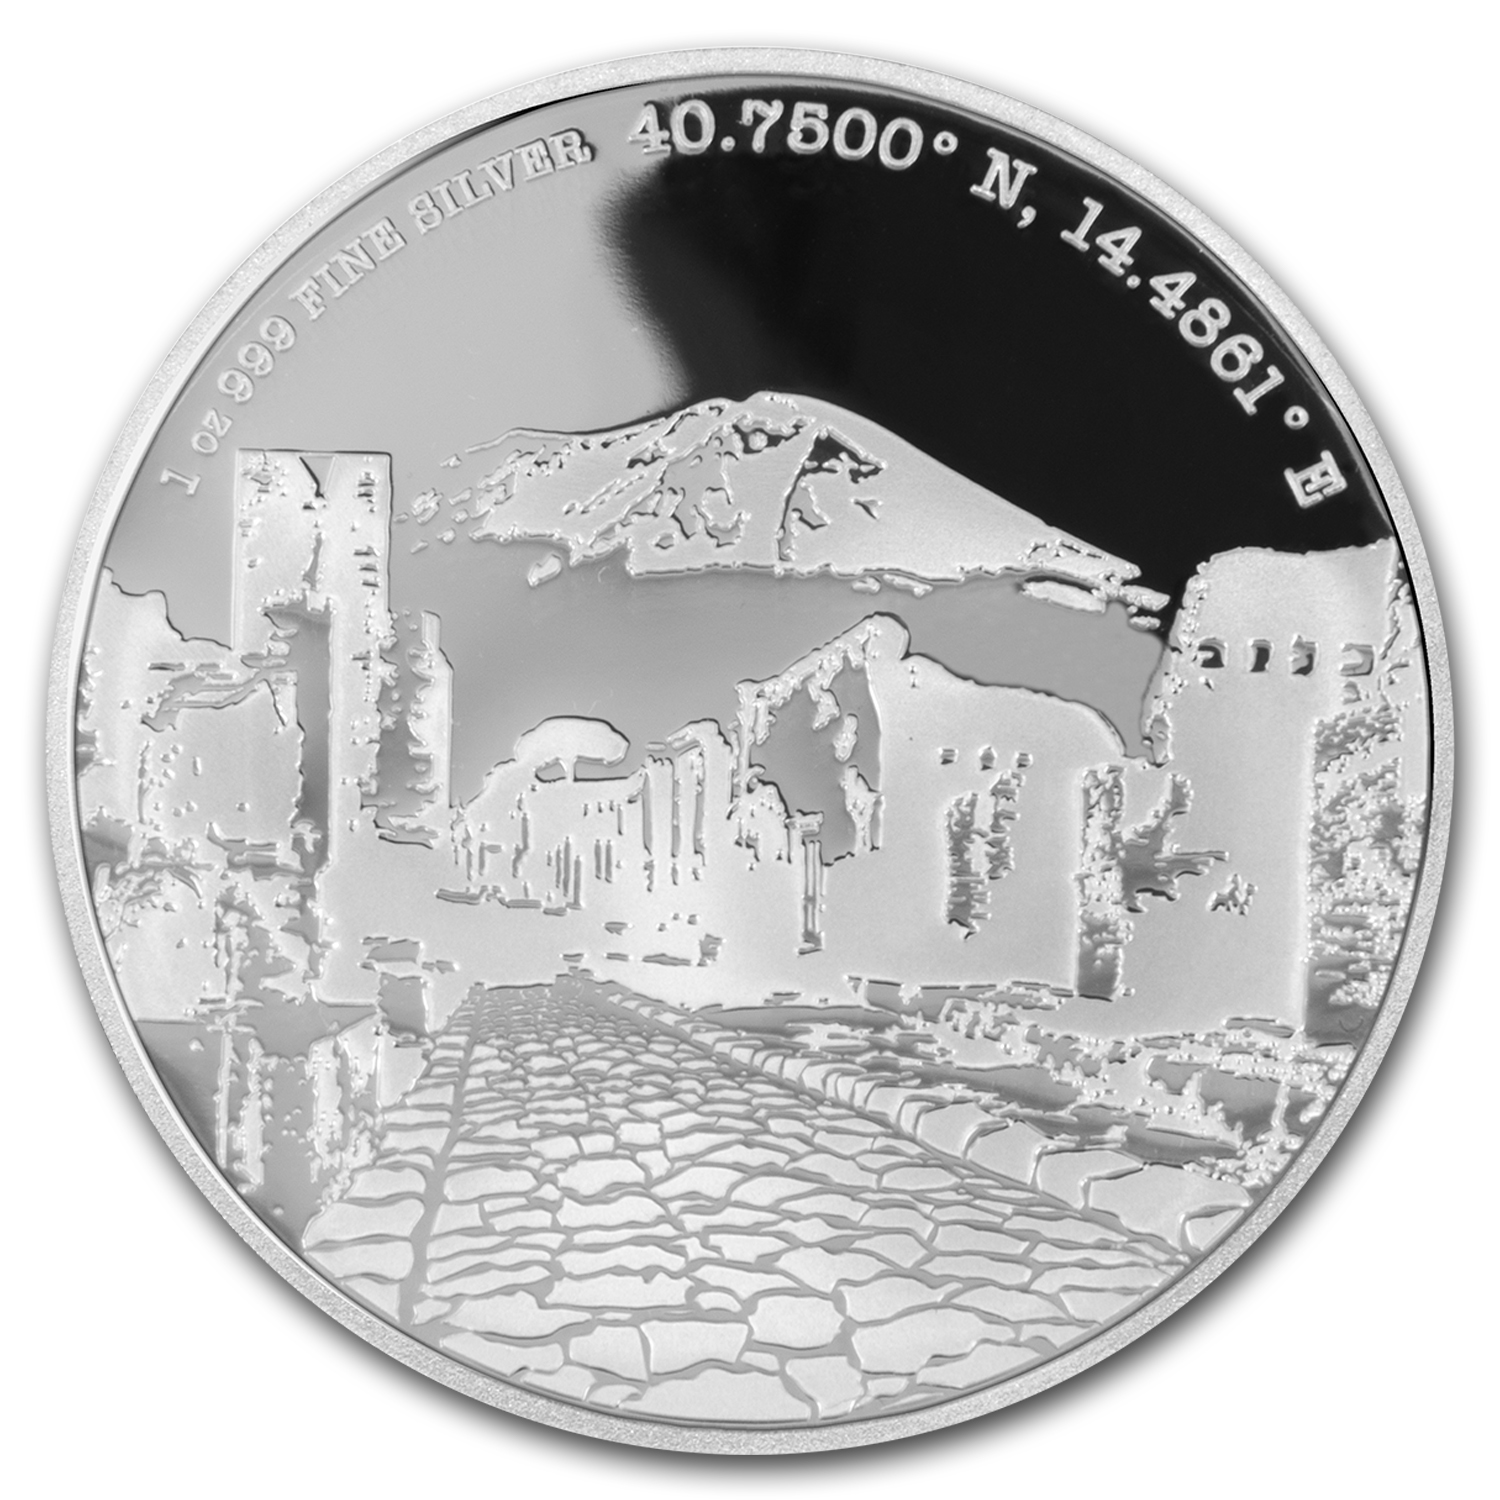 2016 Niue Proof 1 oz Silver Forgotten Cities Pompeii